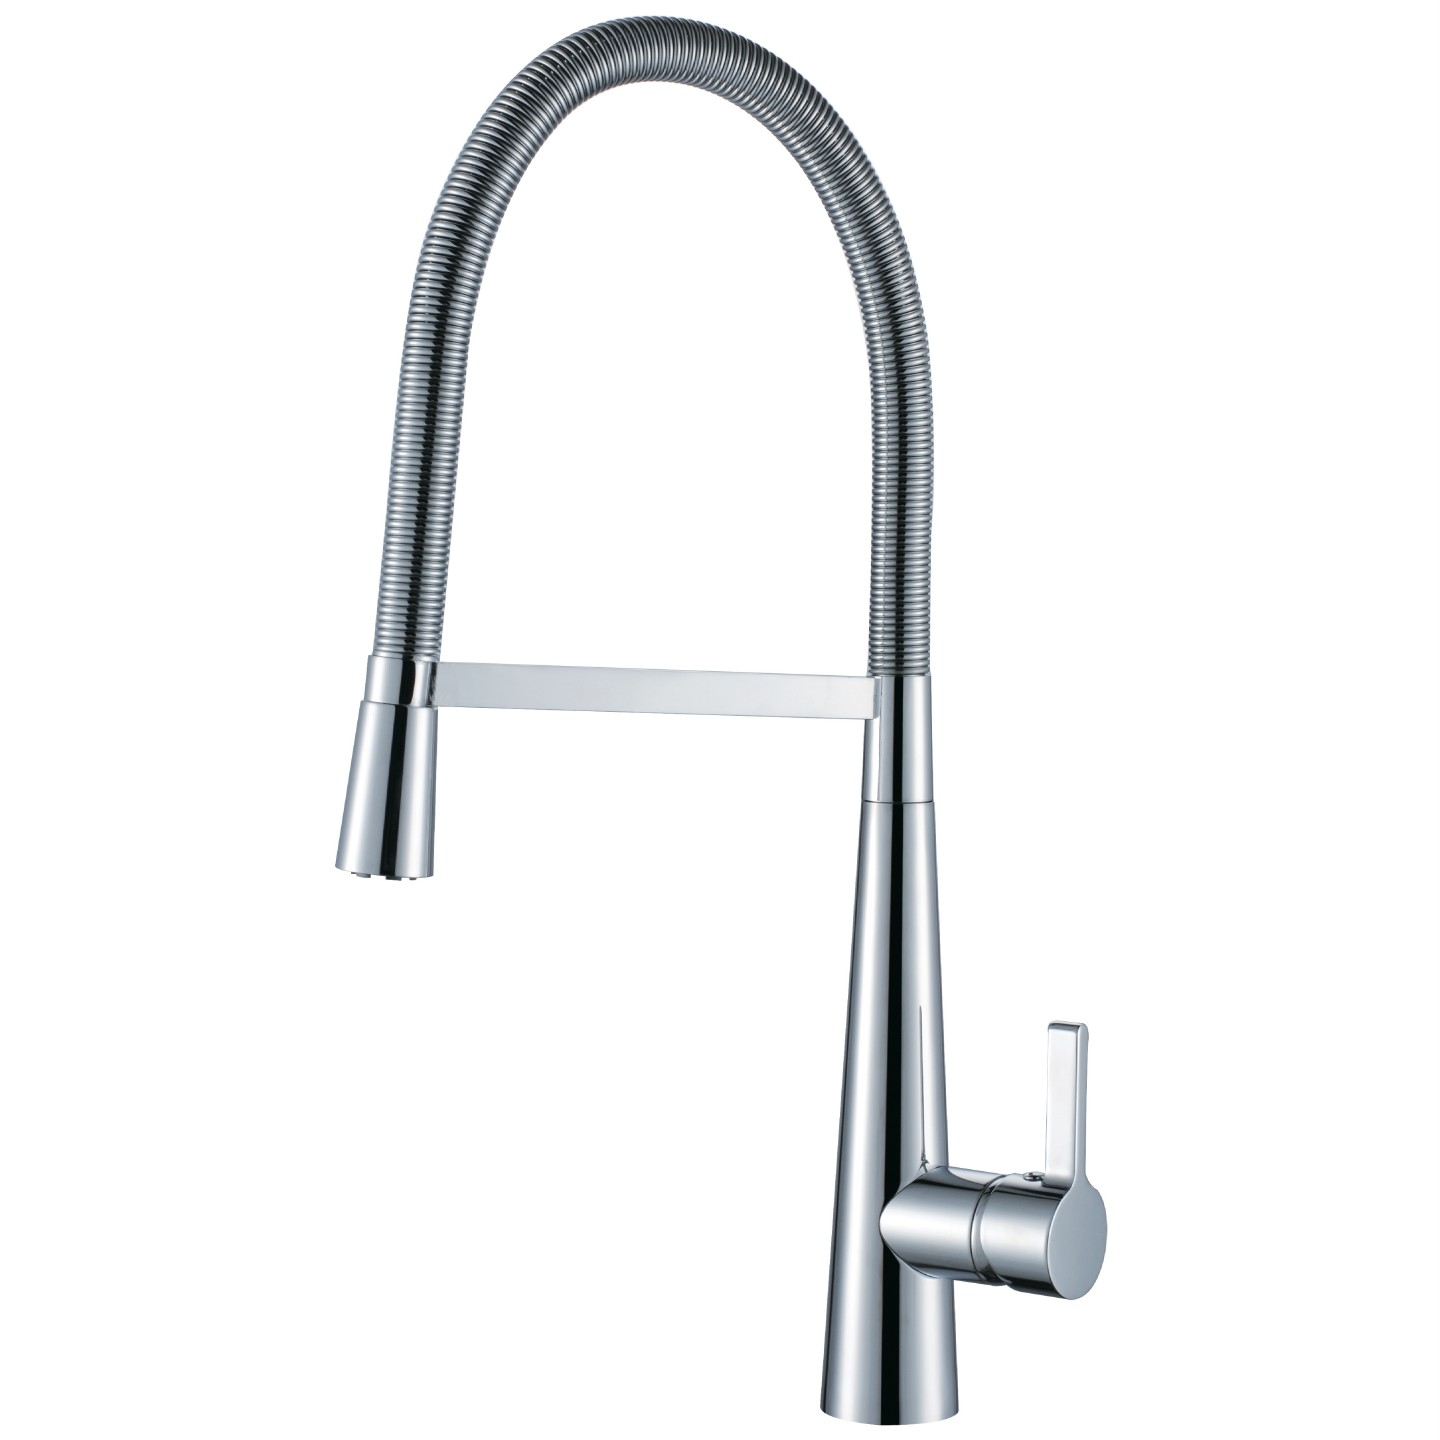 kitchen sink mixer tap modena - Kitchen Sink Mixer Taps